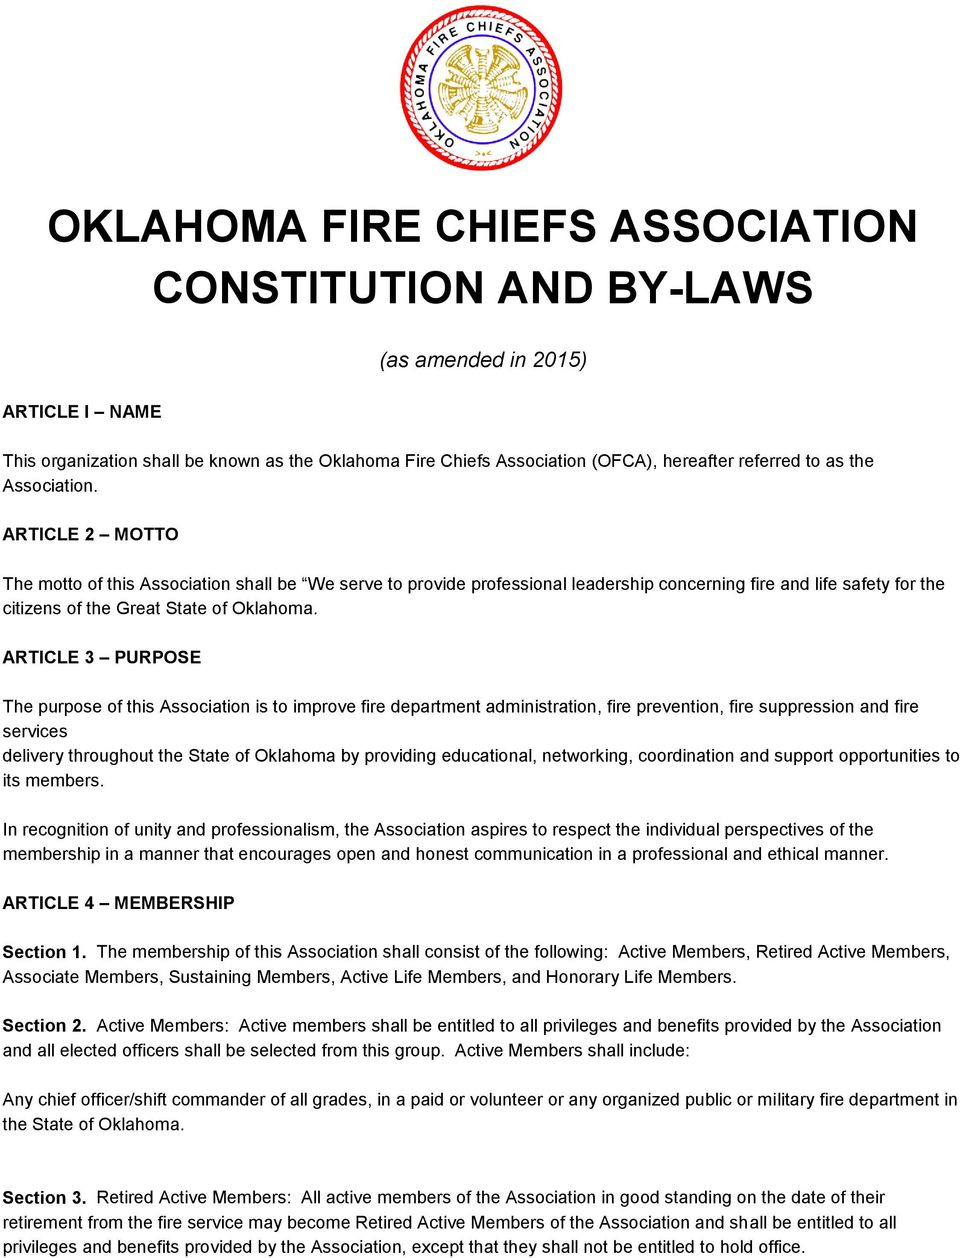 ARTICLE 3 PURPOSE The purpose of this Association is to improve fire department administration, fire prevention, fire suppression and fire services delivery throughout the State of Oklahoma by